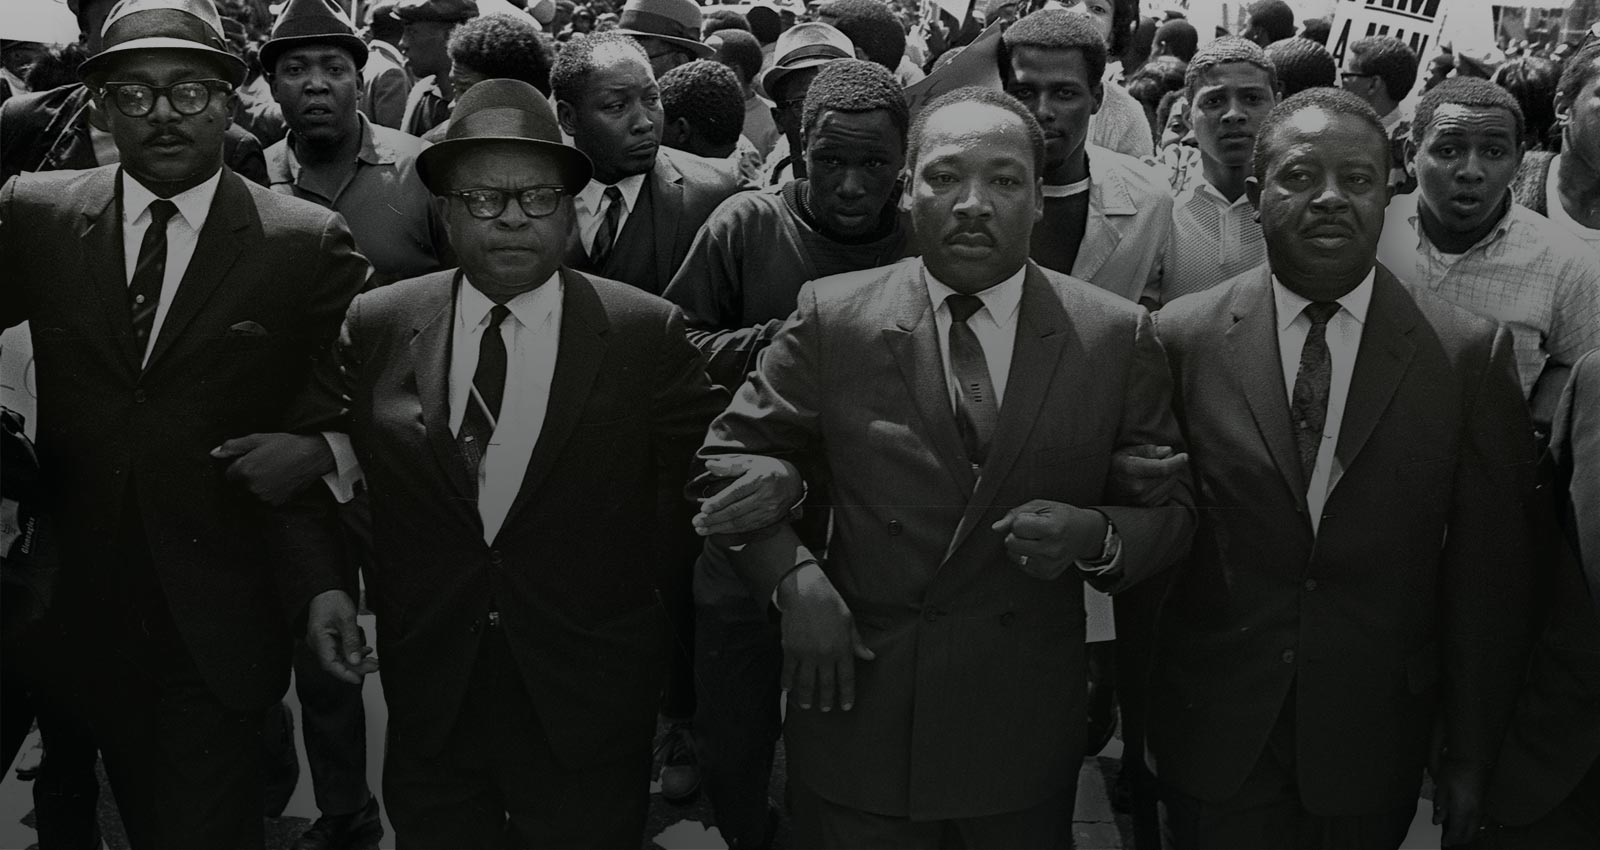 Martin Luther King marching